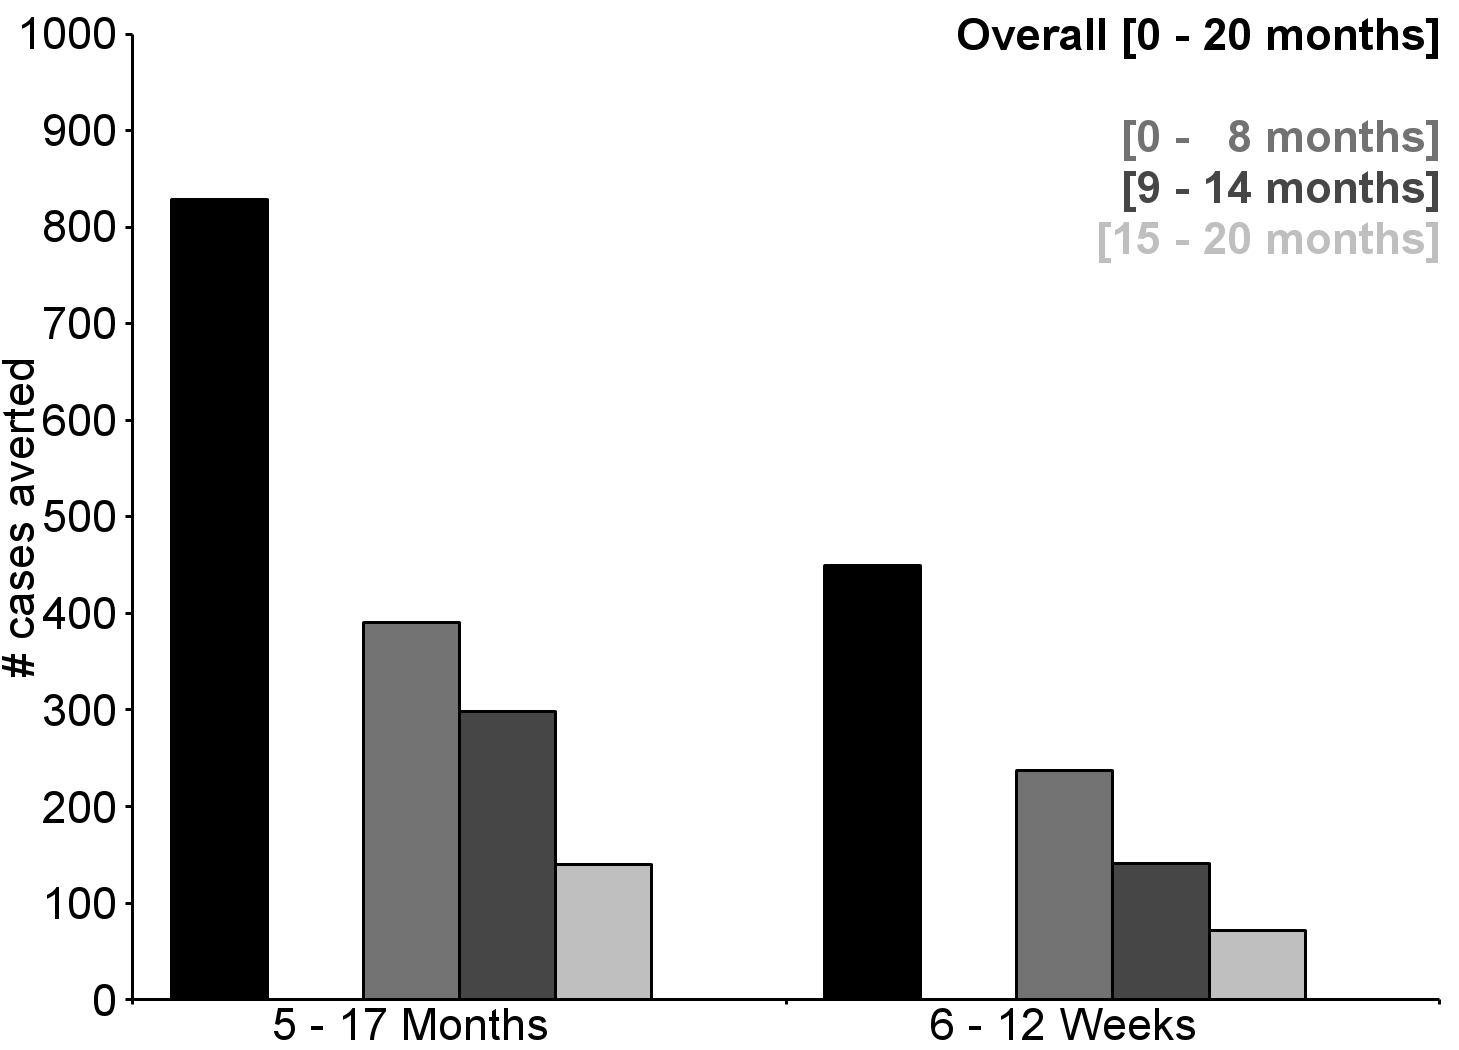 Number of cases of clinical malaria (secondary case definition) averted per 1,000 participants vaccinated during a 20-mo follow-up period (intention-to-treat population).